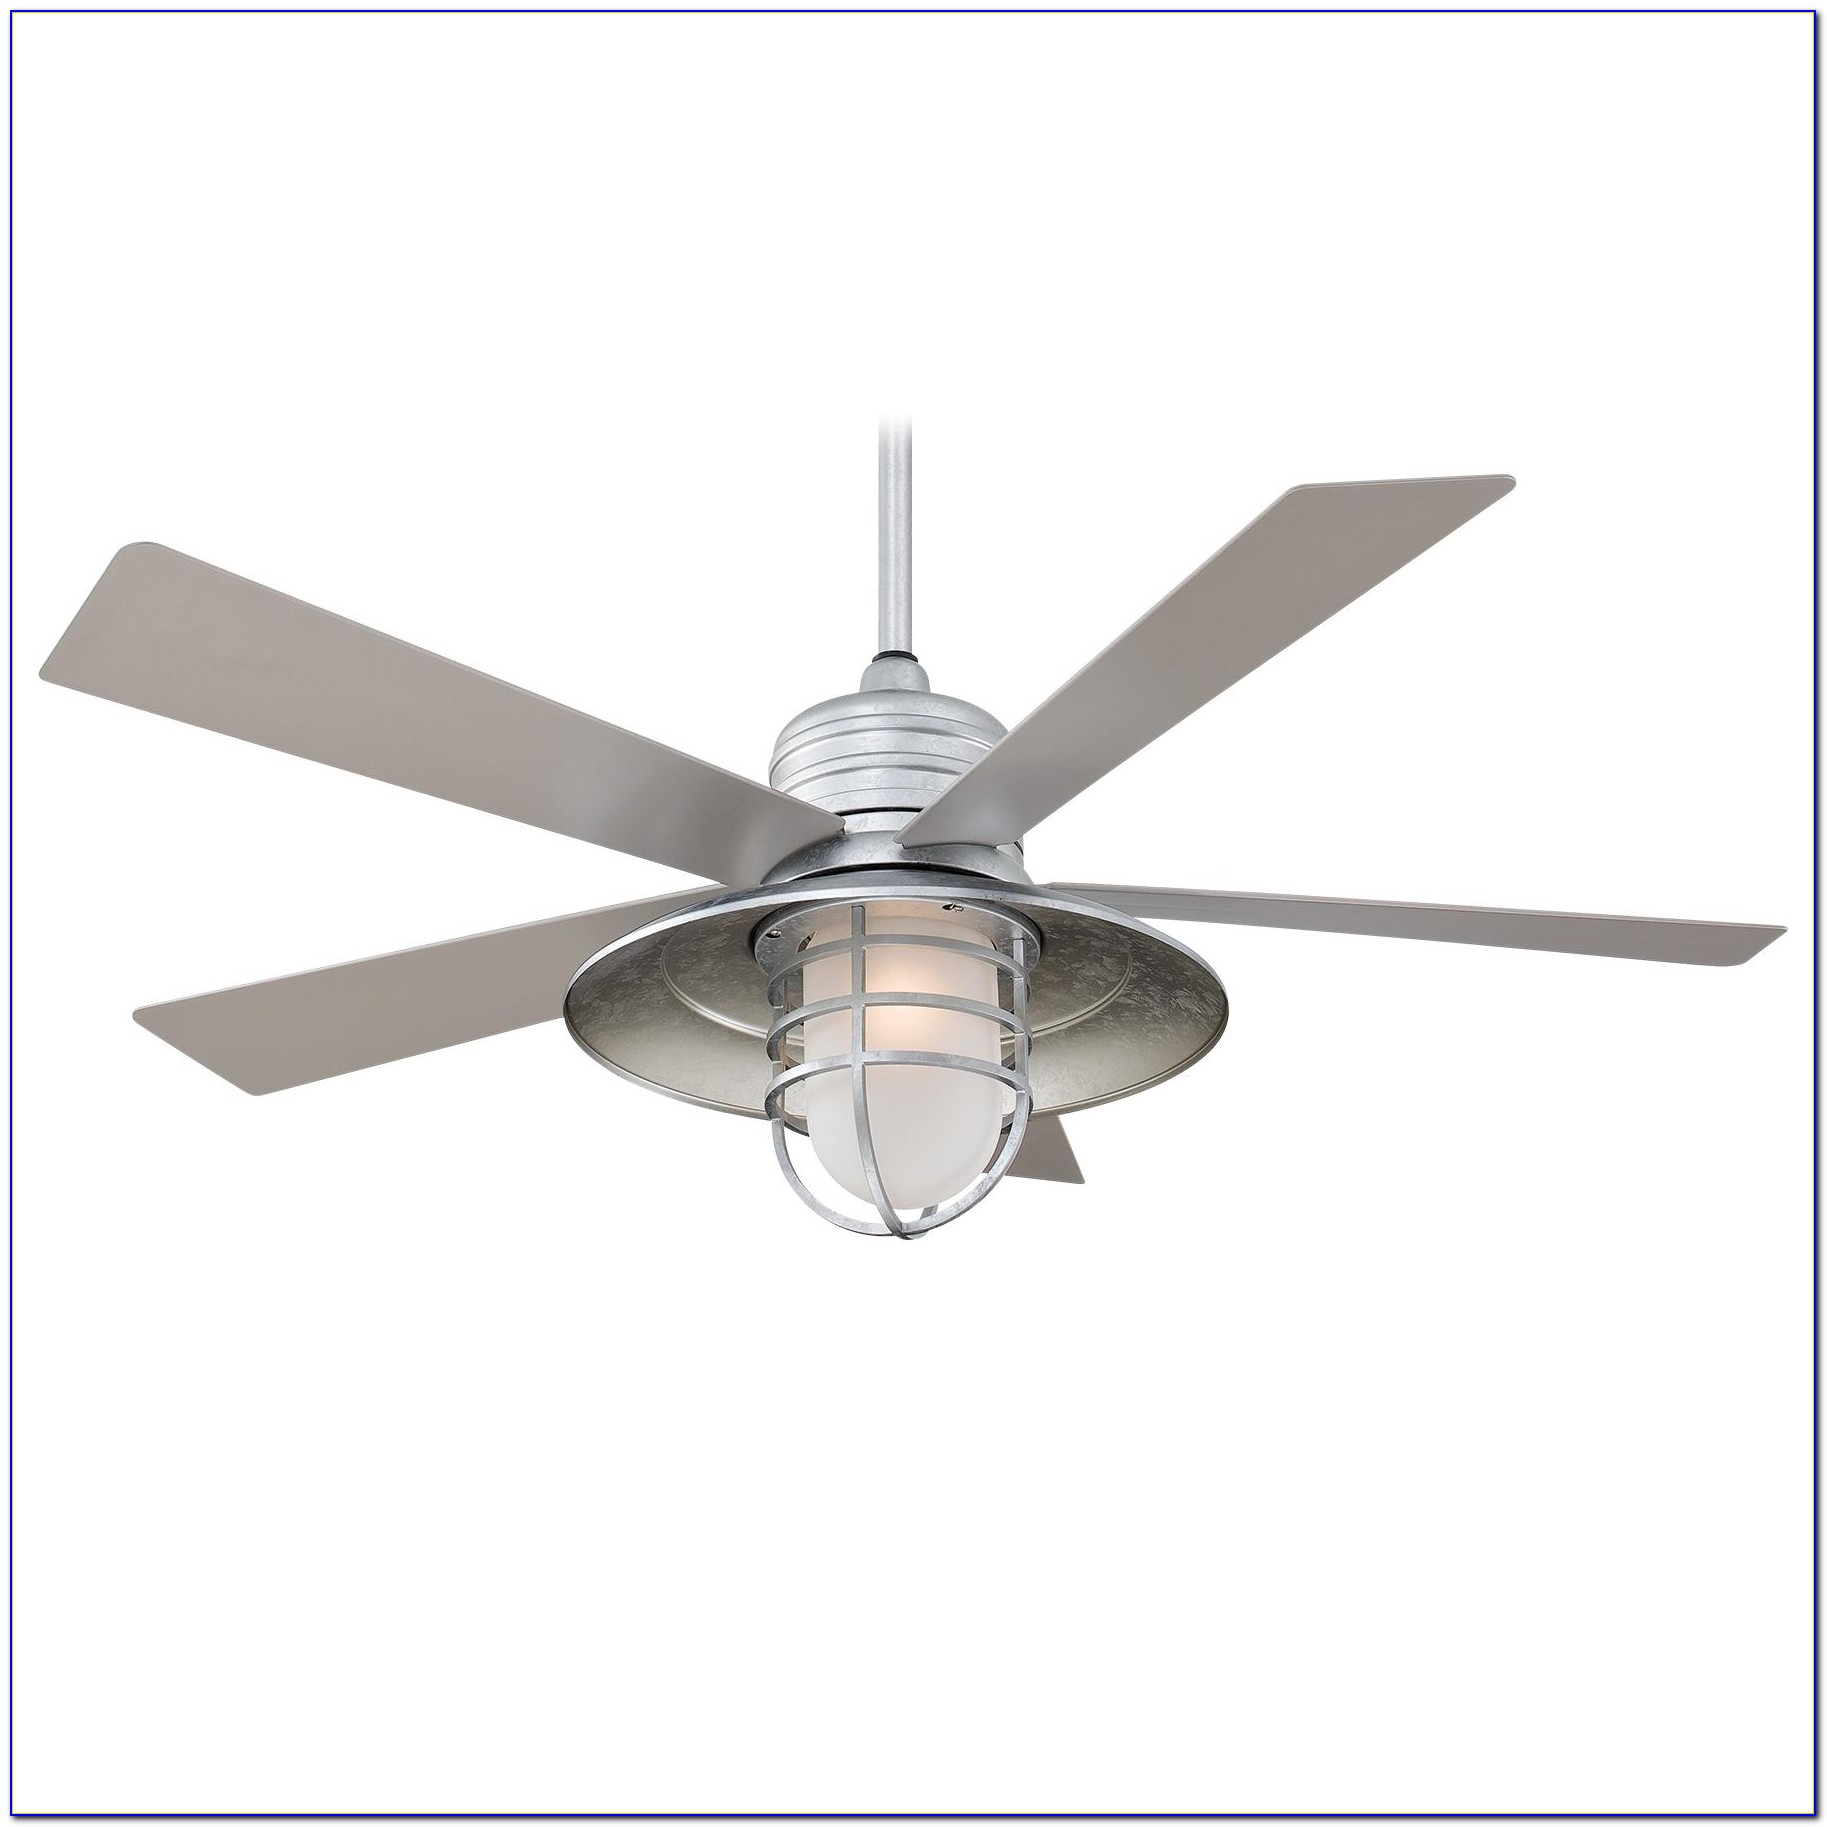 Bright Light Bulbs For Ceiling Fans